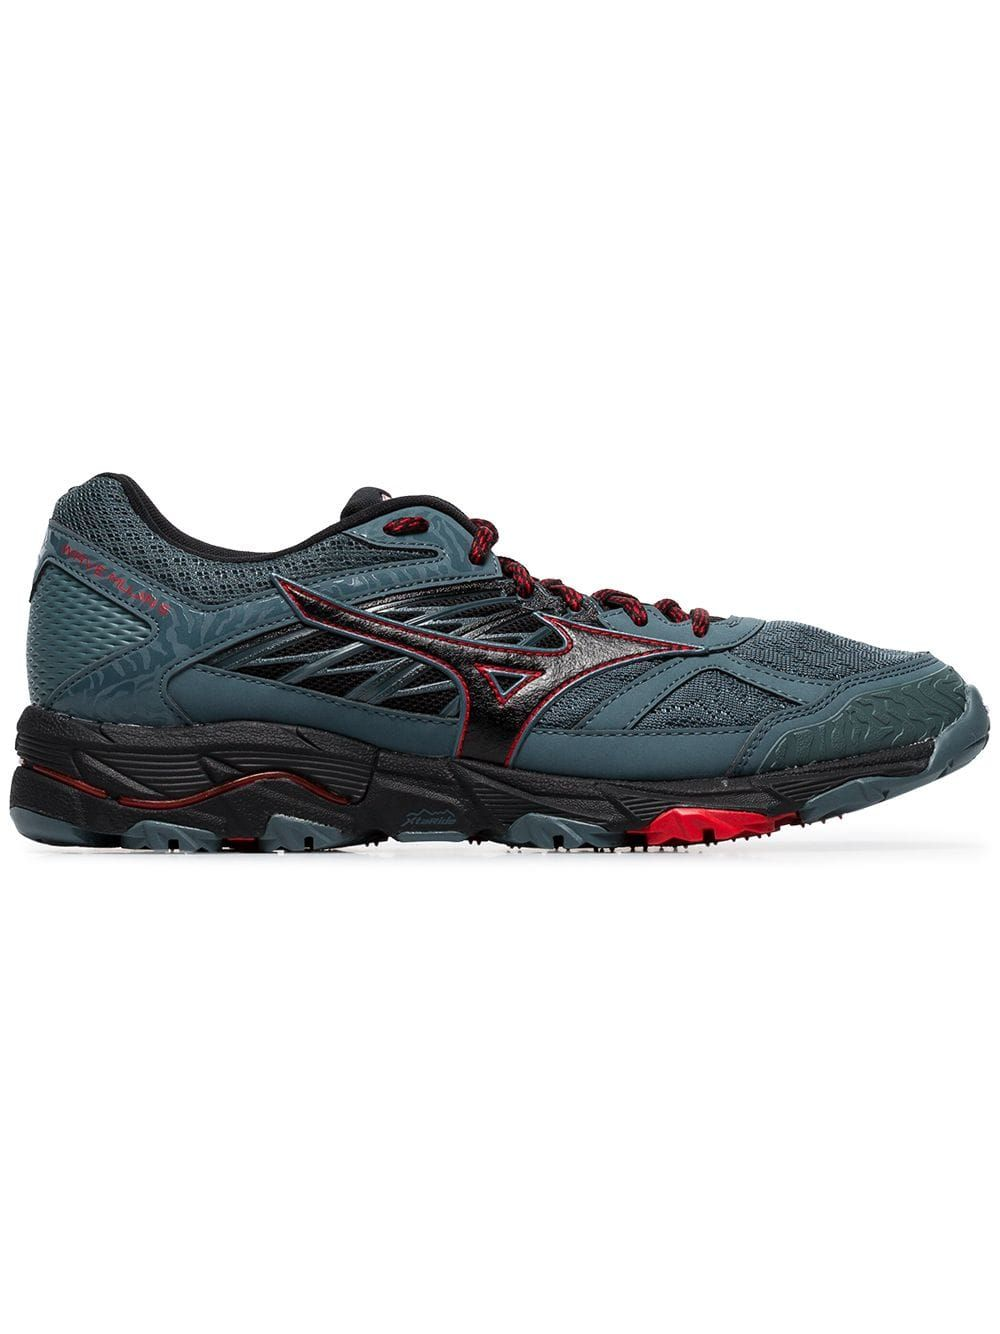 check out 223b7 b9ee9 MIZUNO MIZUNO BLUE AND BLACK WAVE MUJIN 5 LOW TOP SNEAKERS.  mizuno  shoes